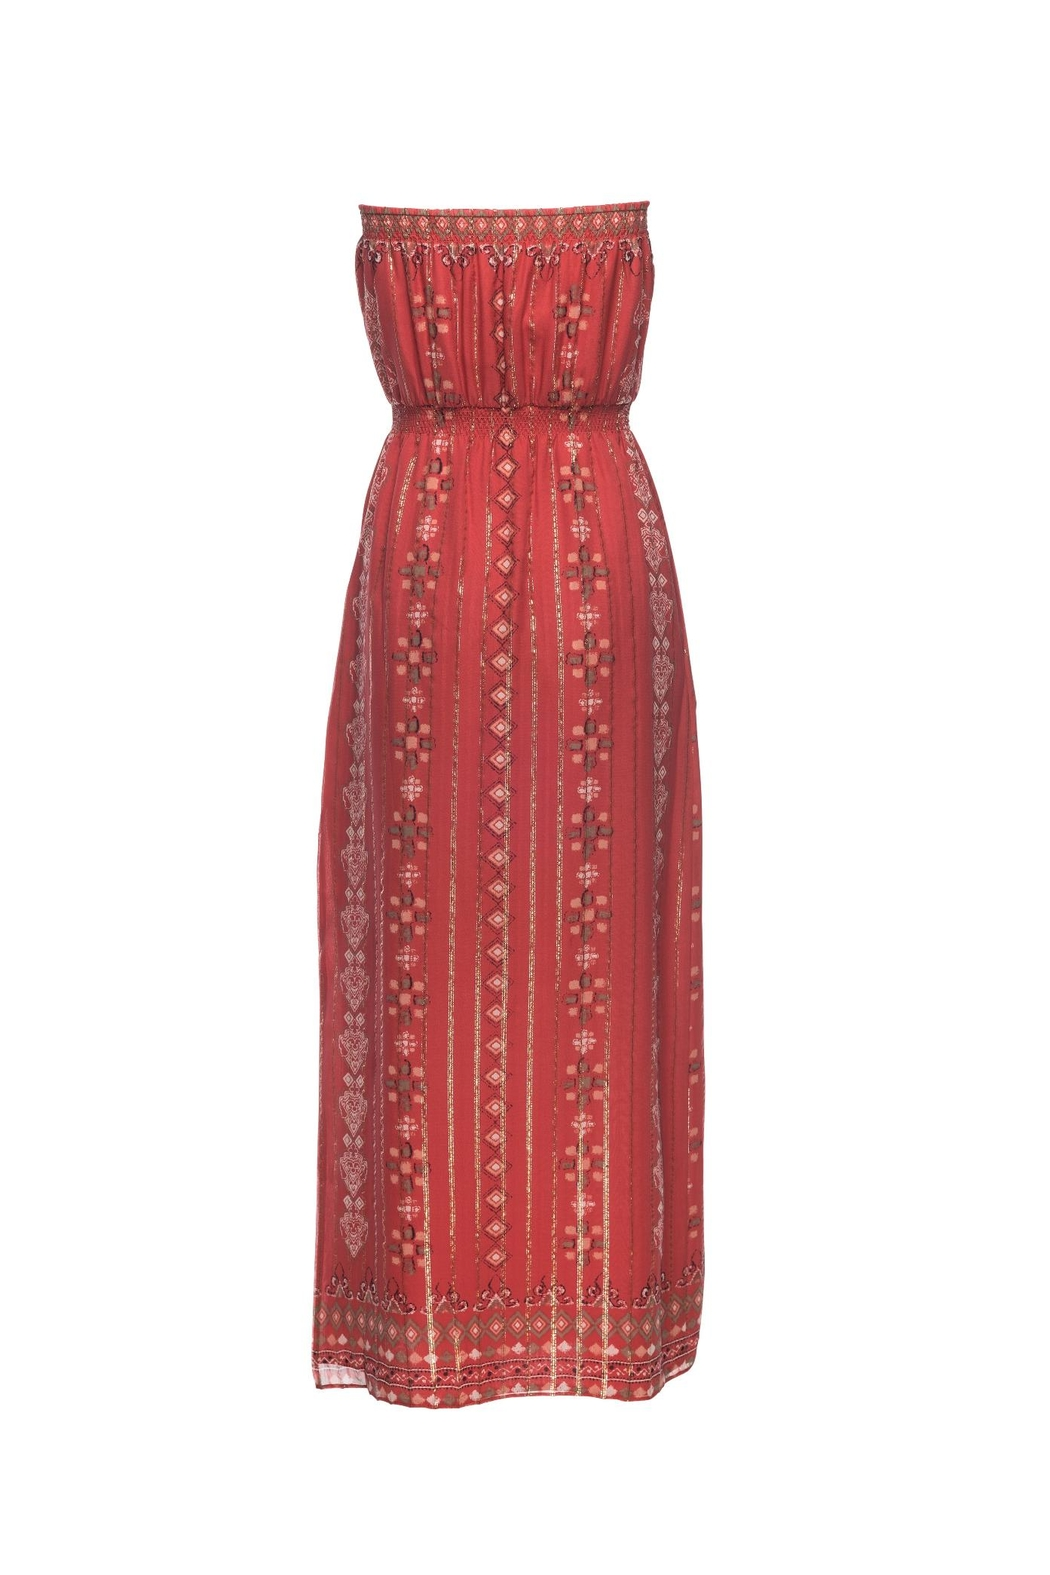 Joie Mariele Terracotta Dress - Front Full Image